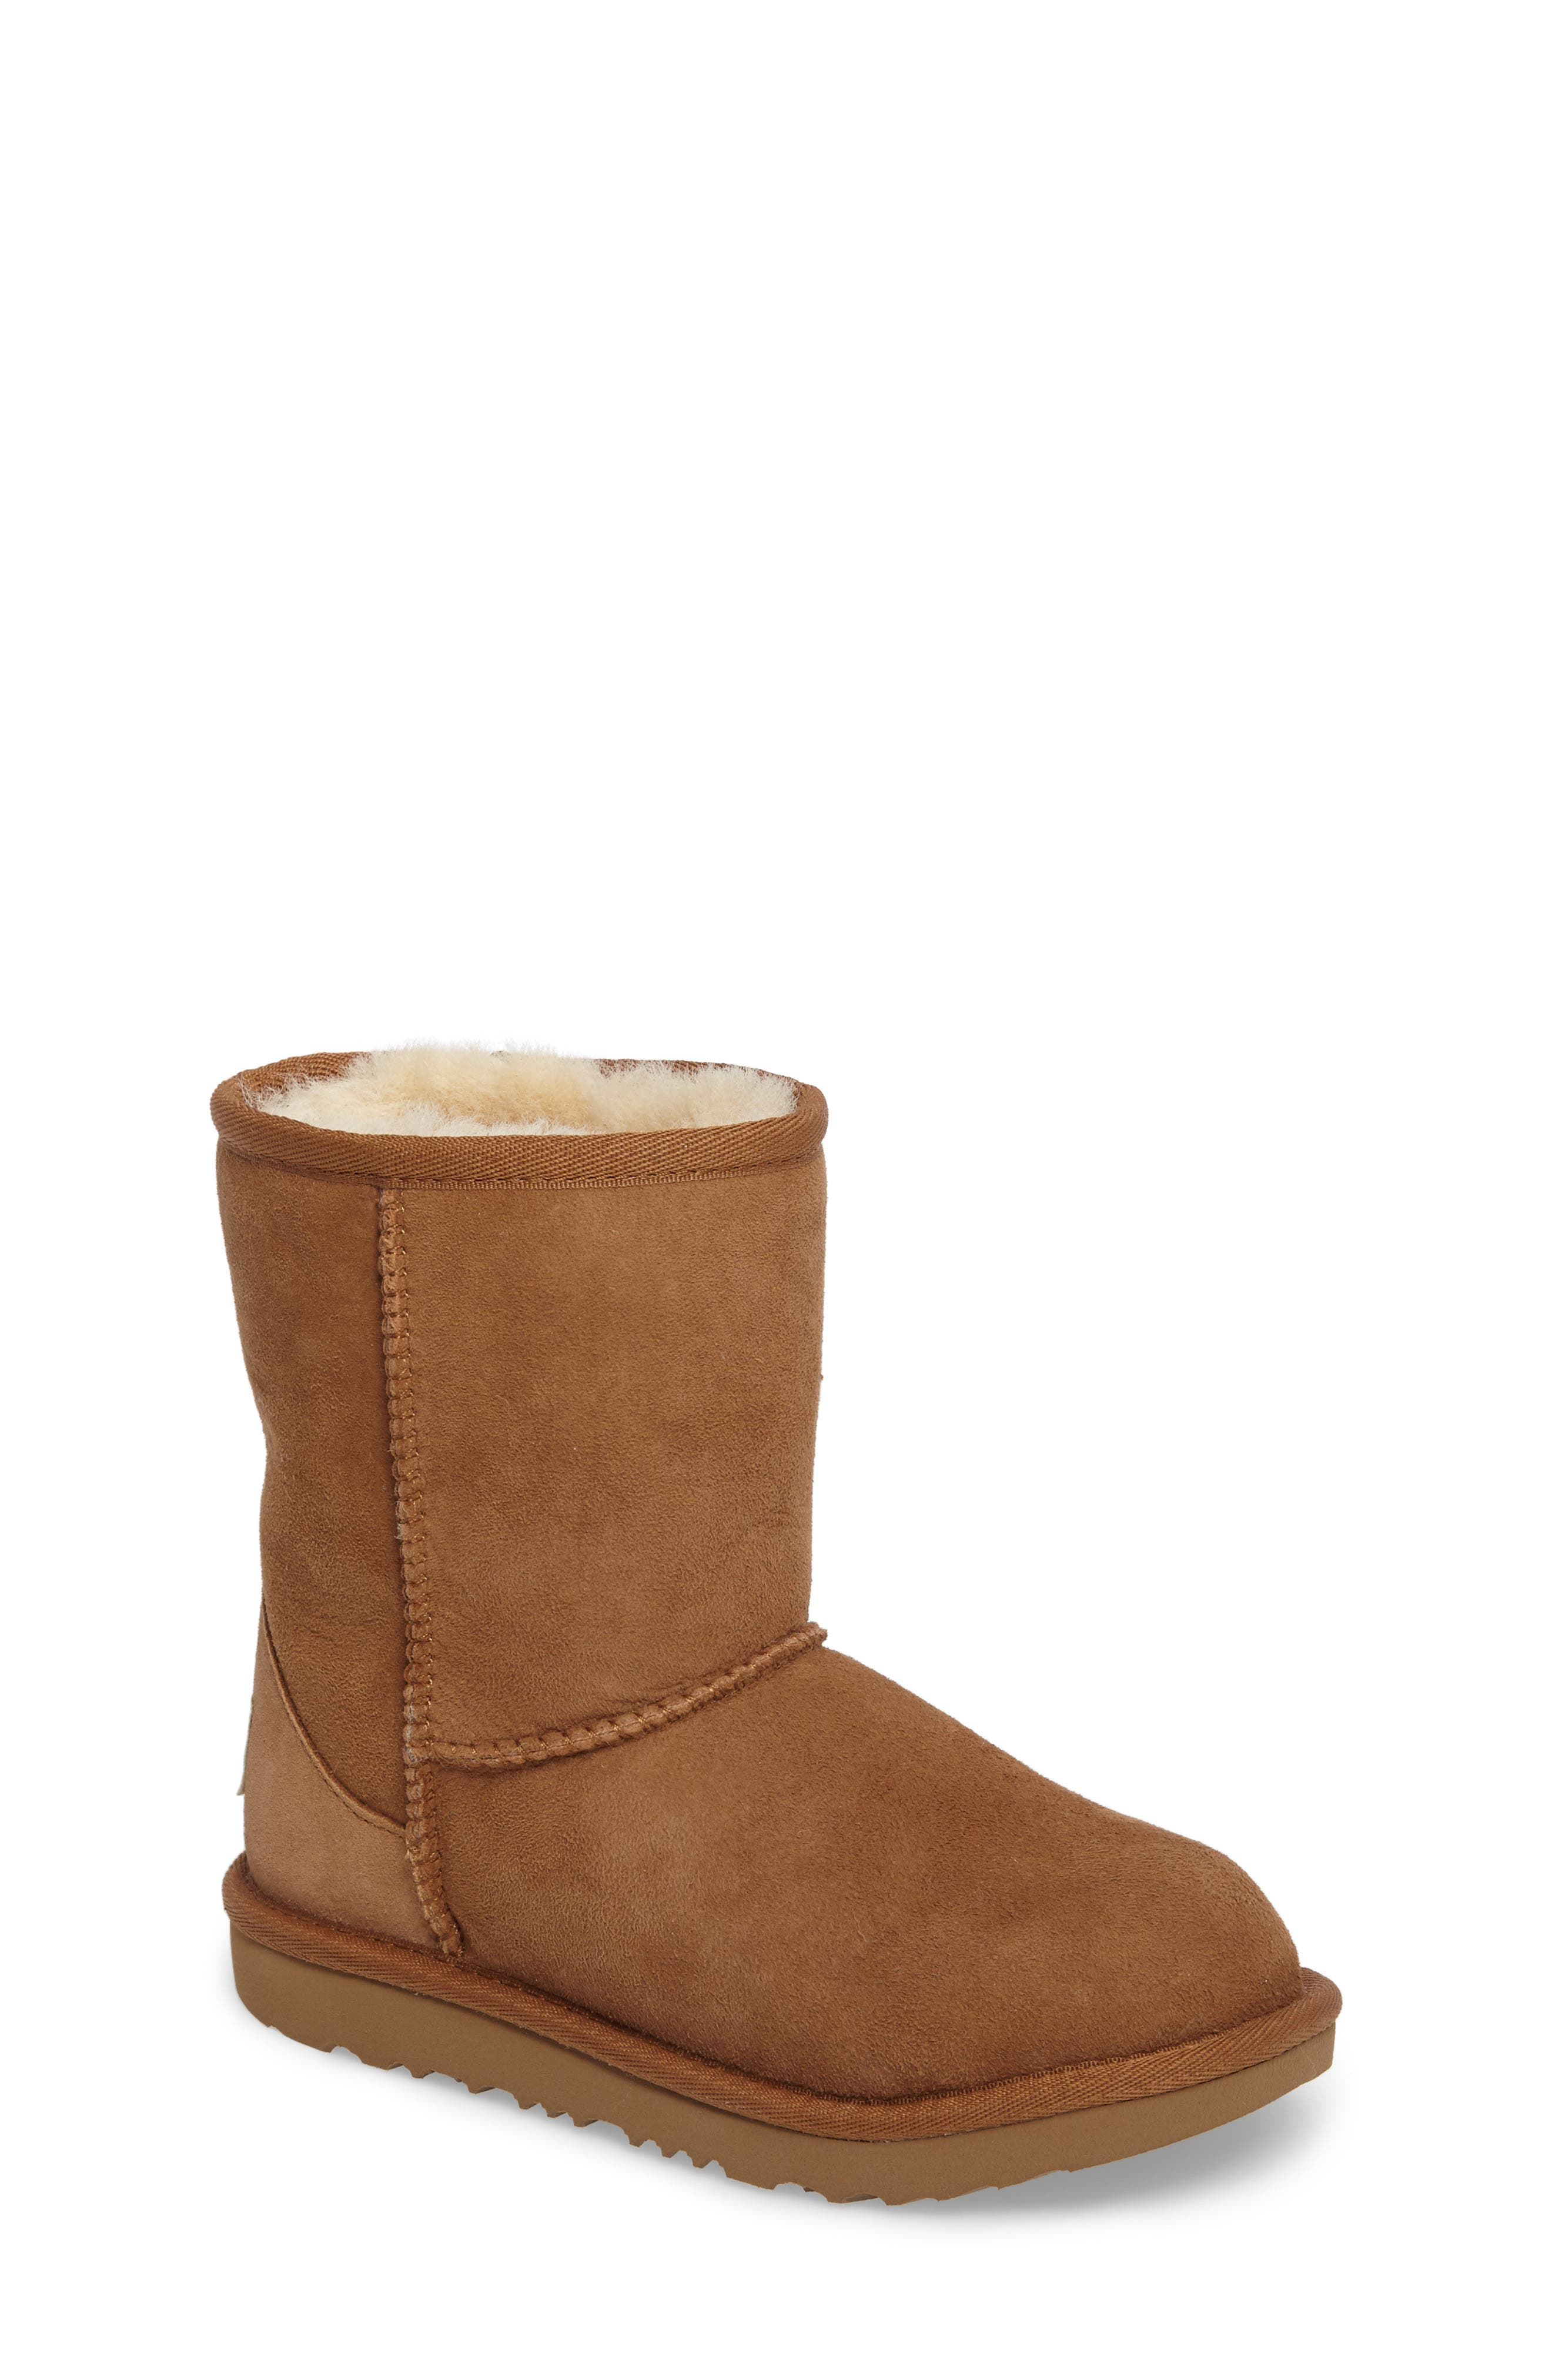 UGG® Classic II Water Resistant Genuine Shearling Boot (Walker, Toddler, Little Kid & Big Kid)